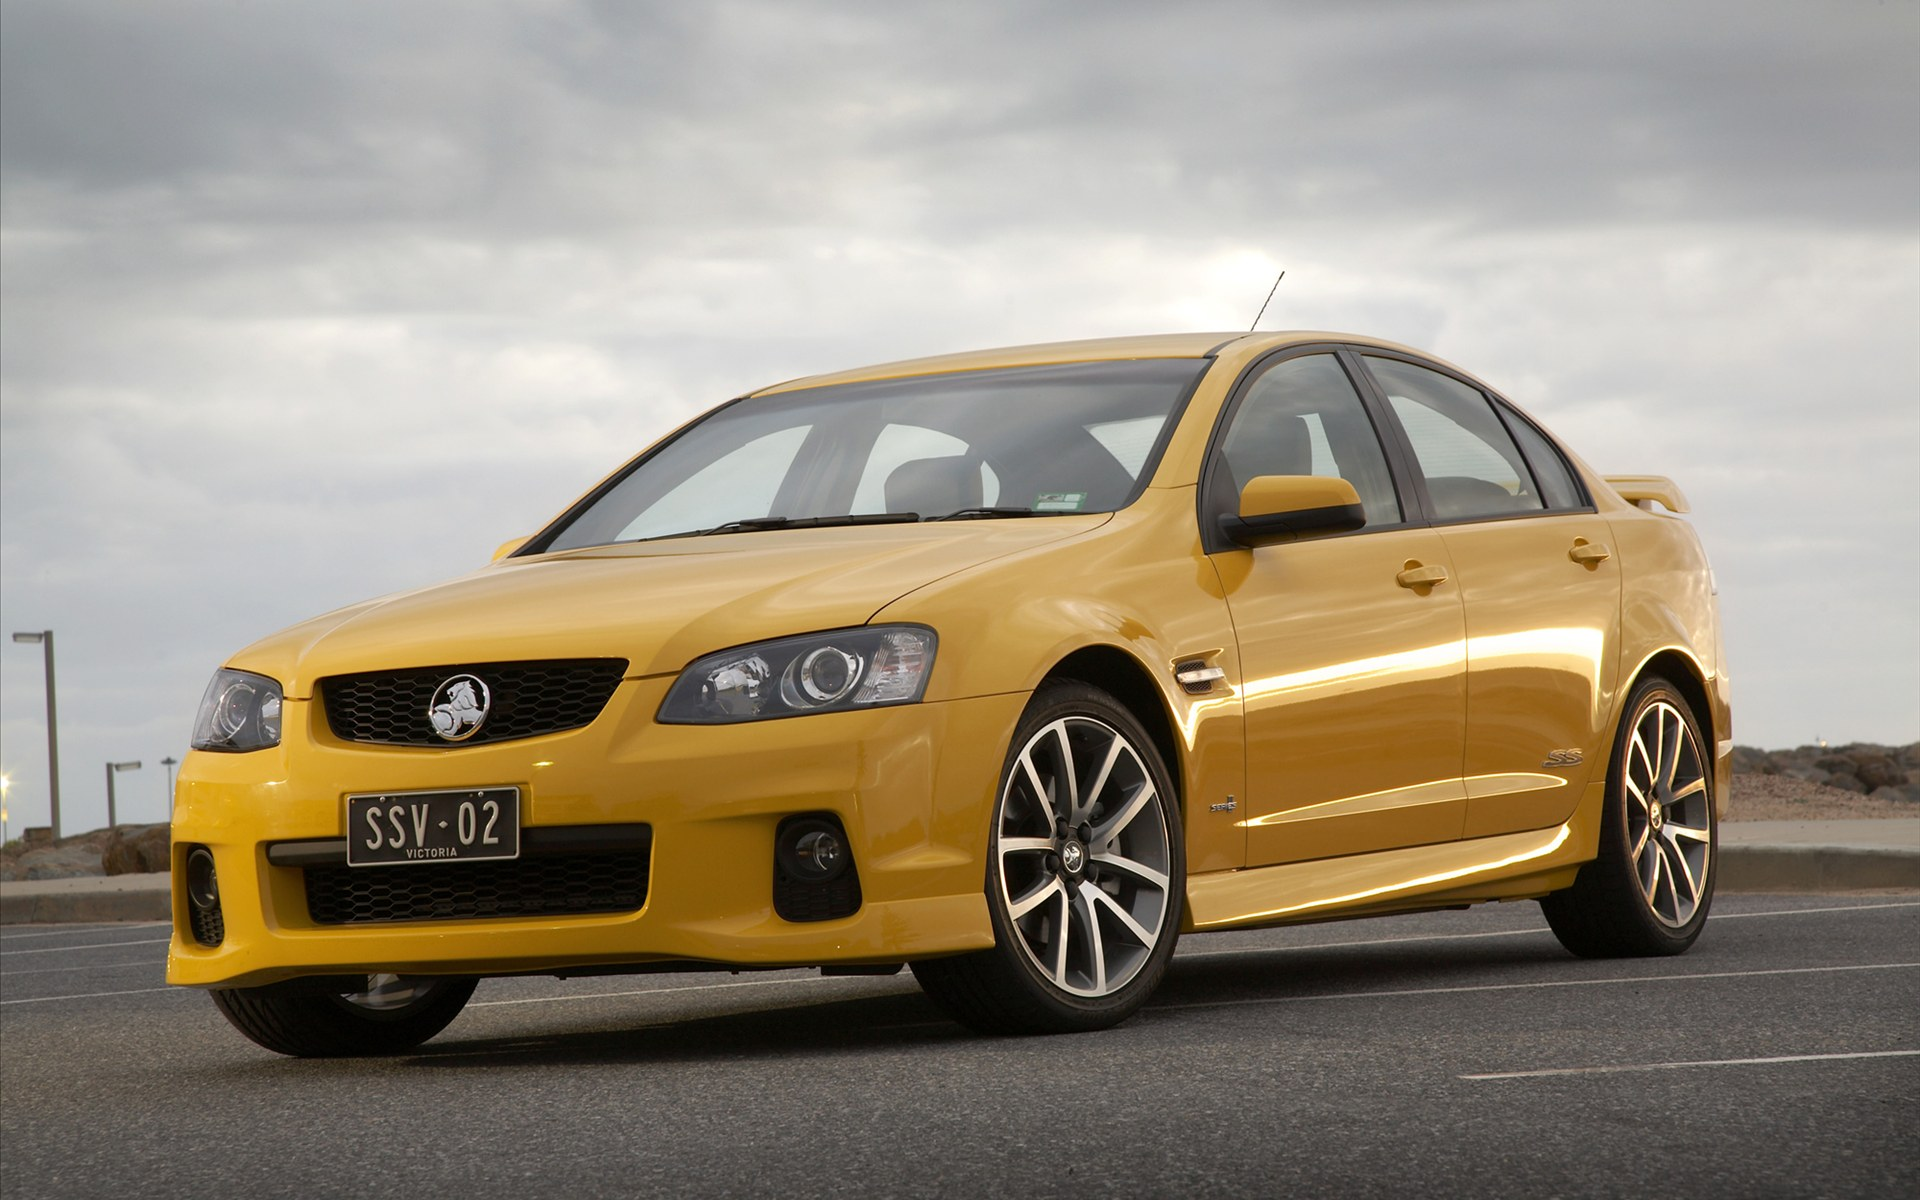 2011 holden ve ii commodore sv6 gallery hd cars wallpaper 2011 holden ve ii commodore sportwagon ssv choice image hd cars 2011 holden ve ii commodore vanachro Image collections